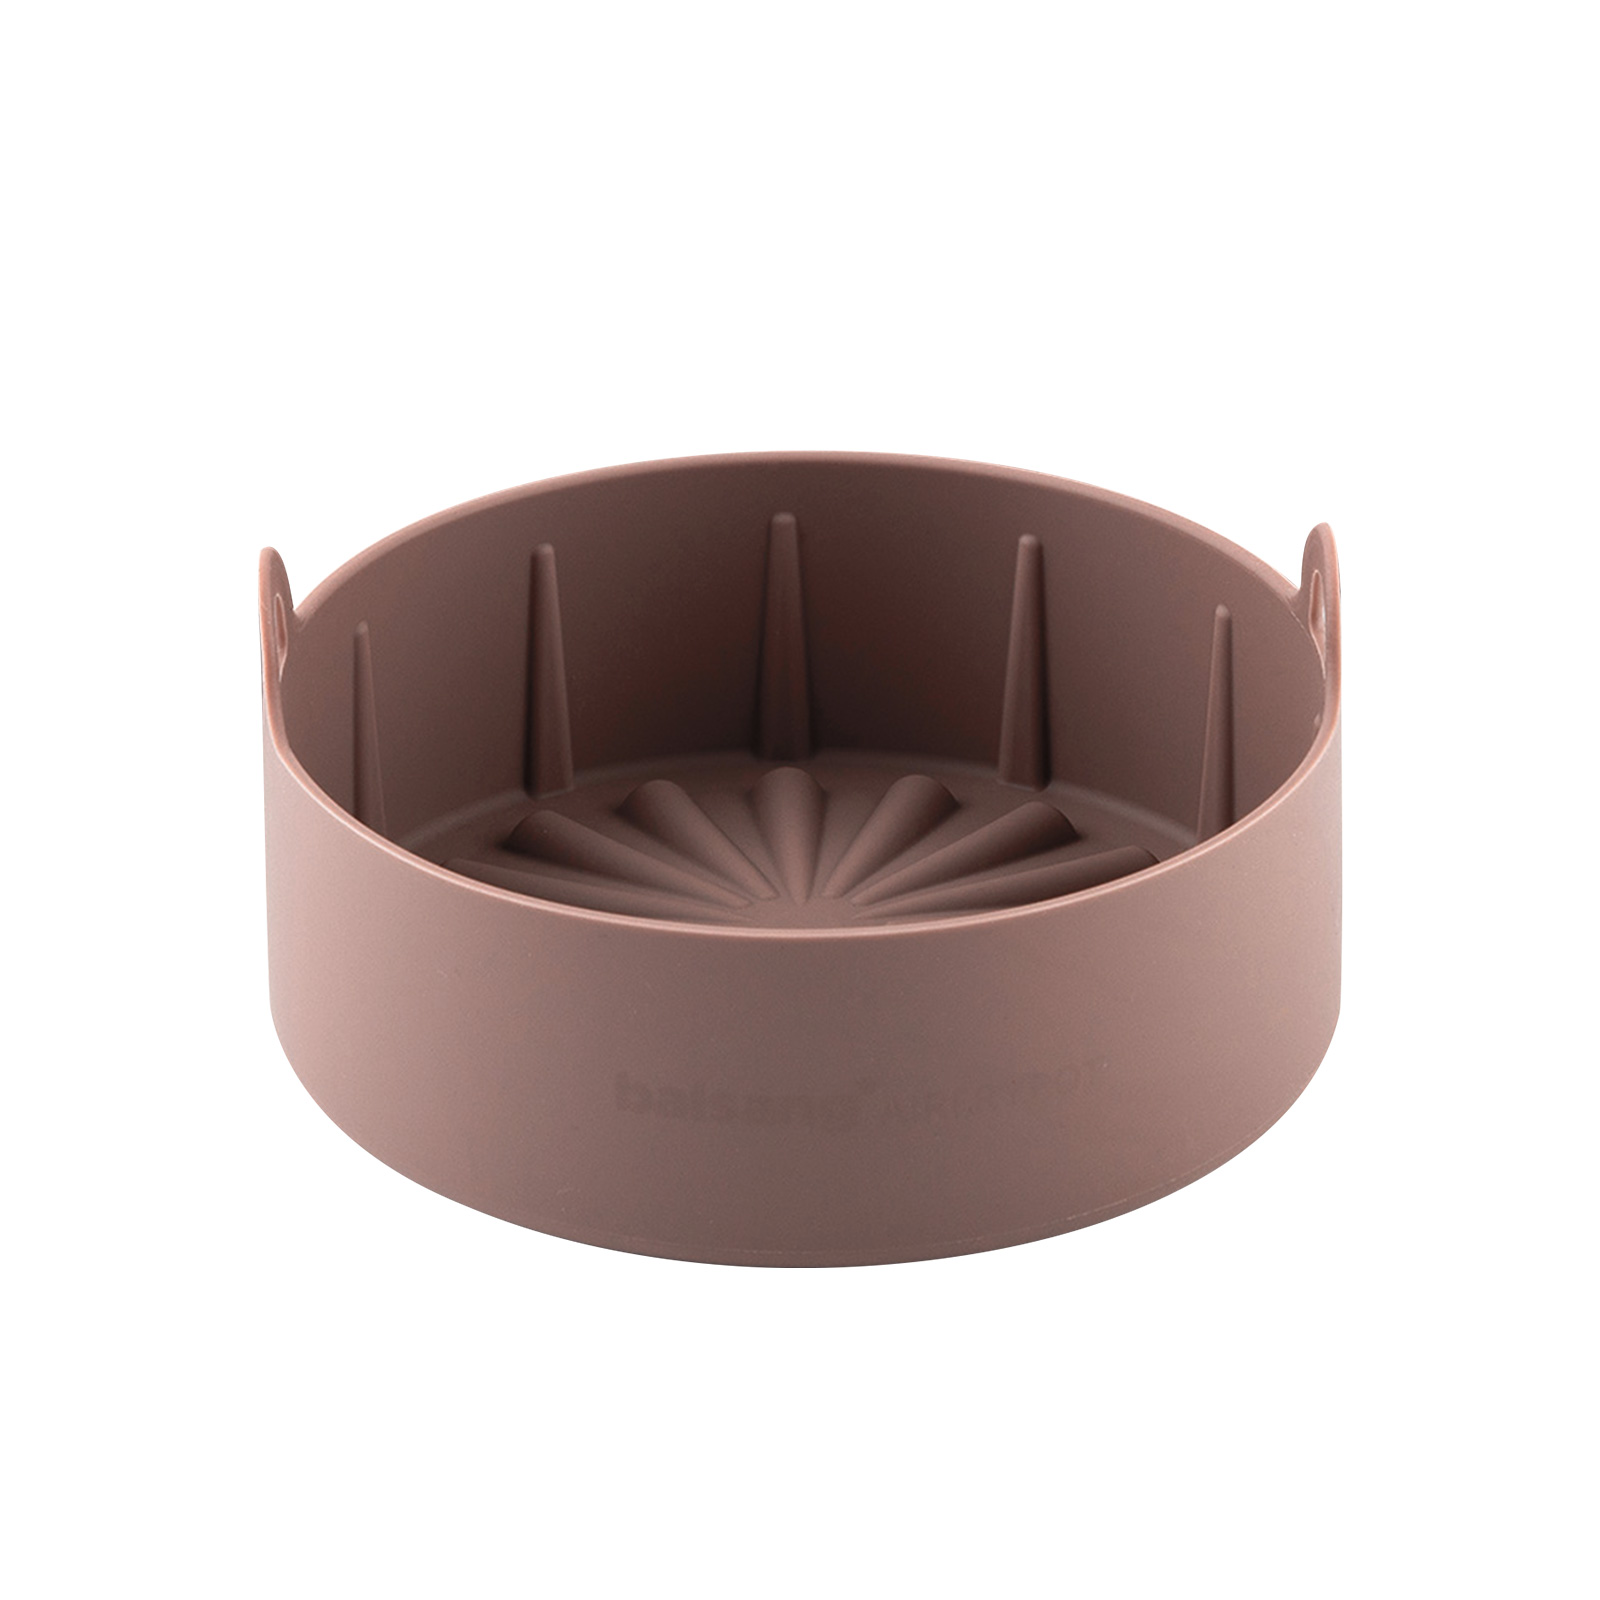 Airfryer Reusable Silicone Pot Large - CHOCOLATE